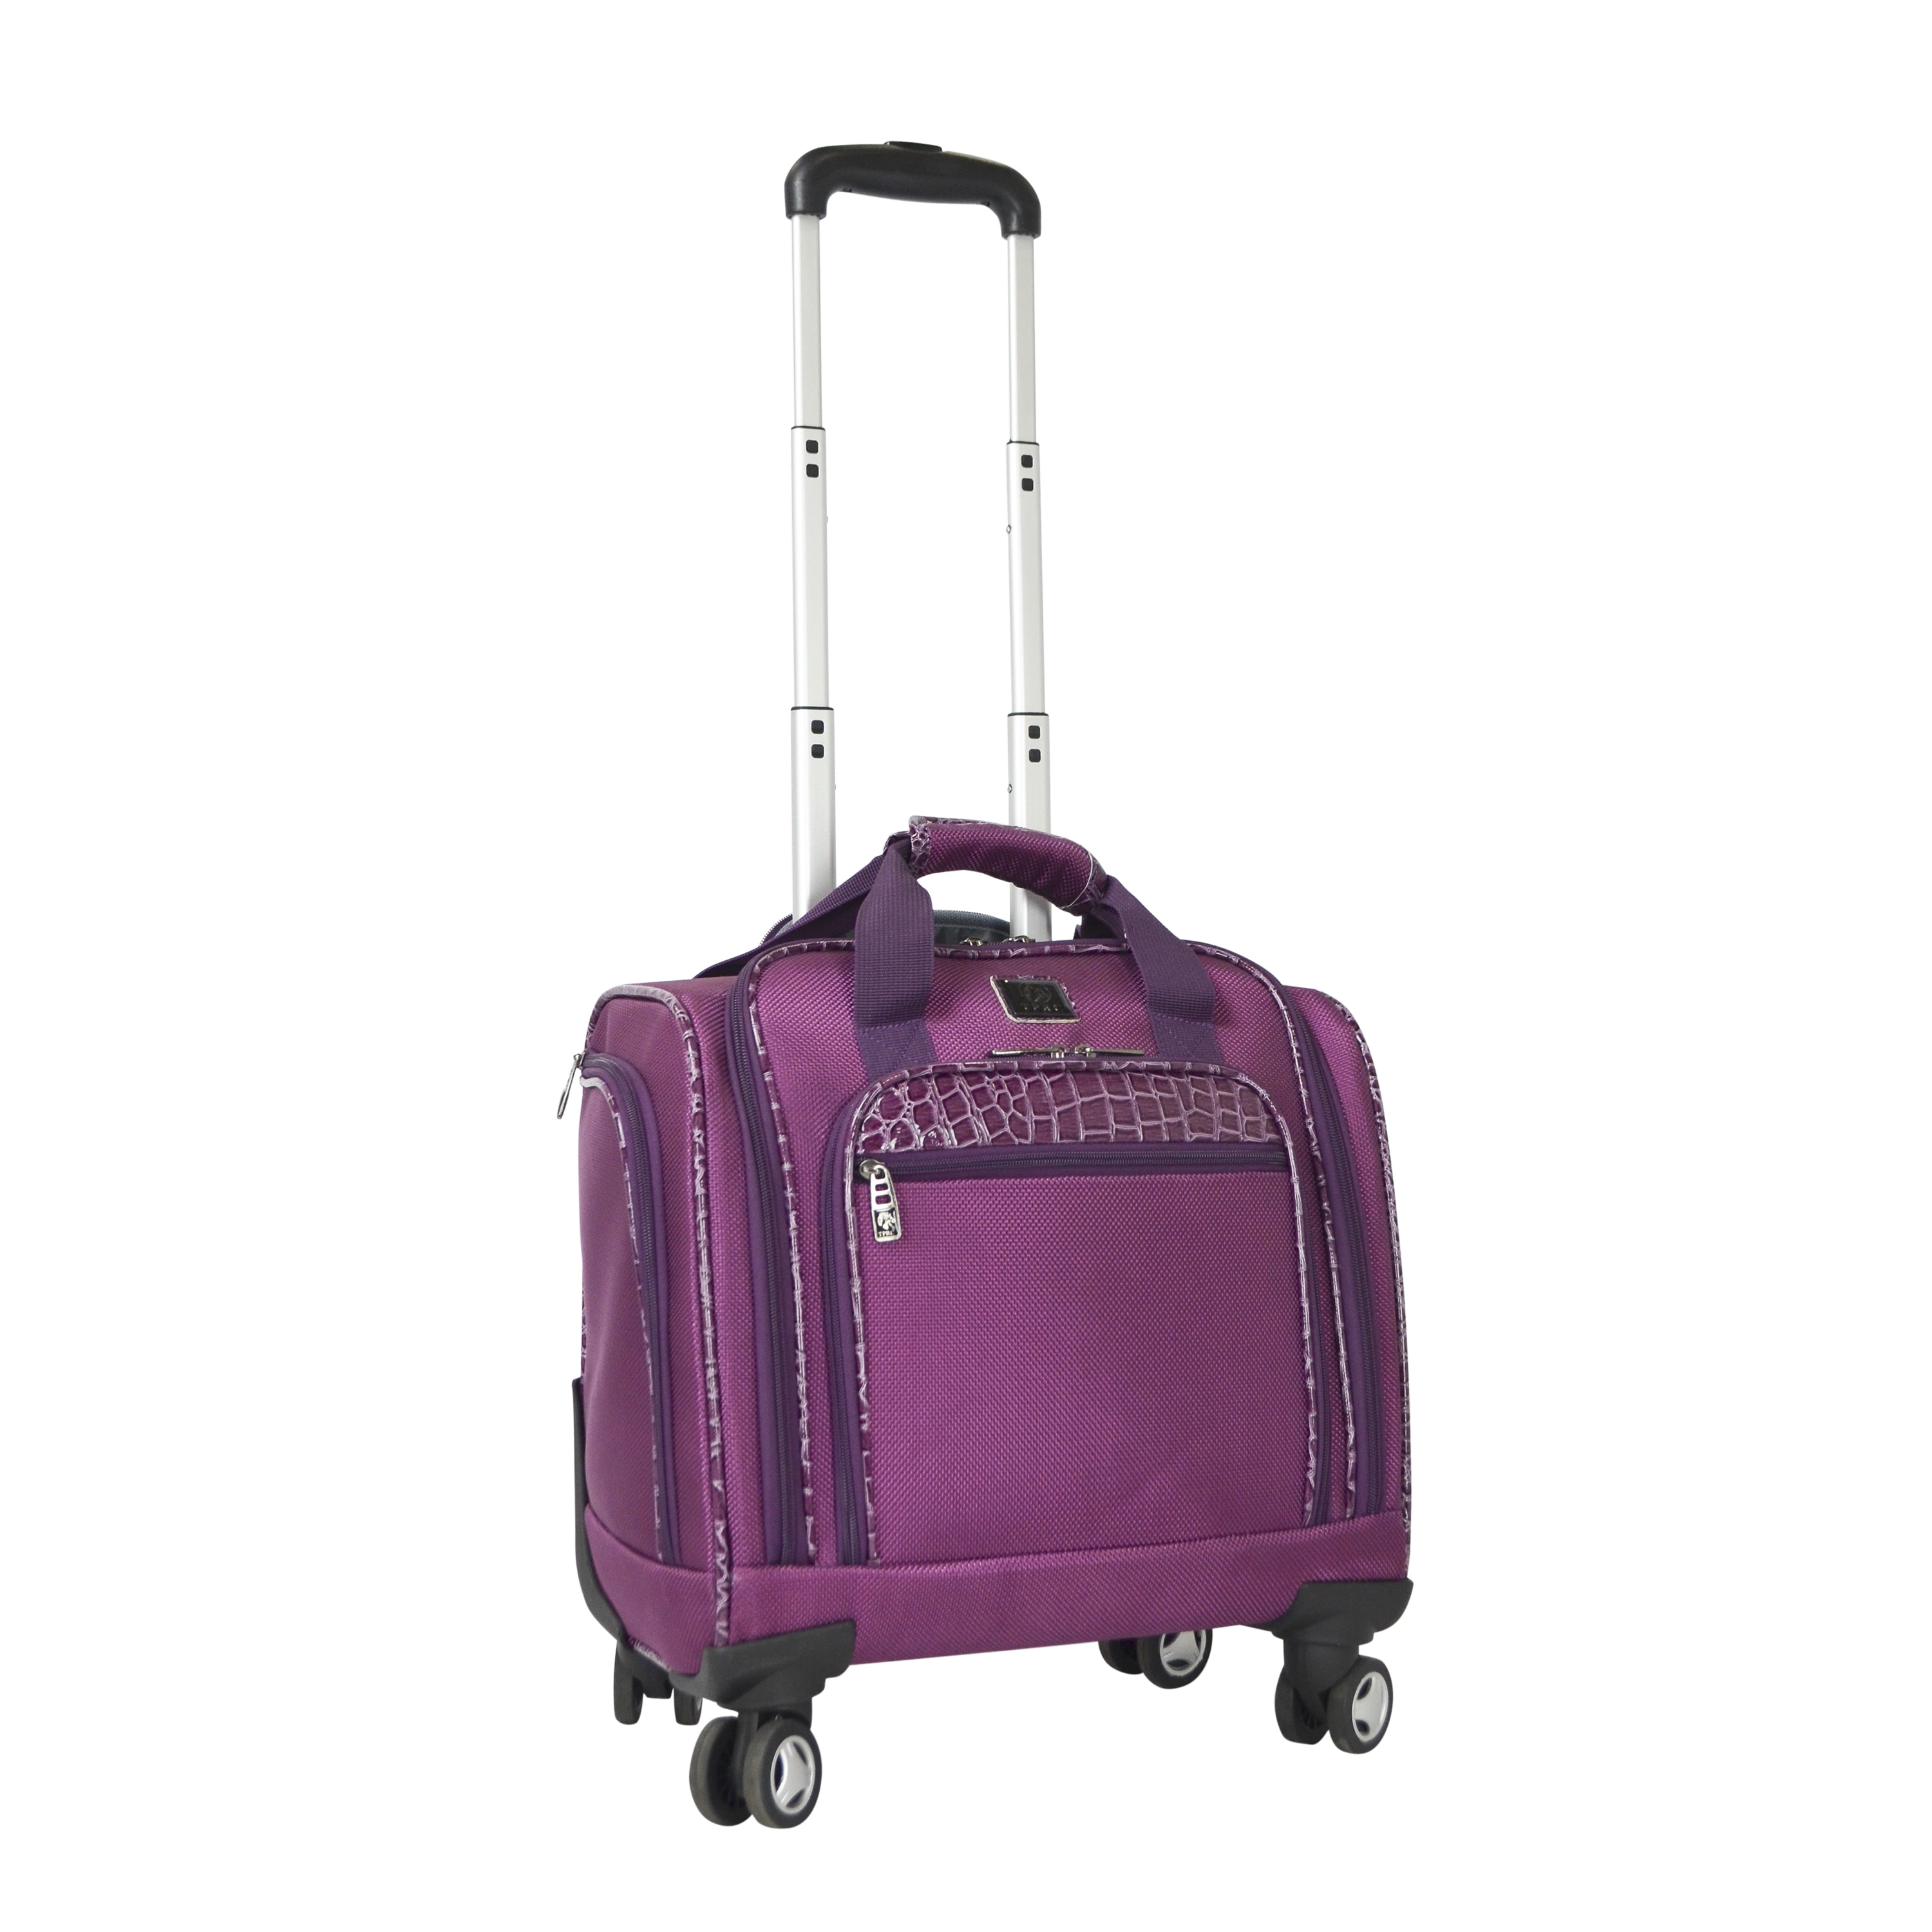 Shop Travelers Club 16-inch Carry-on Spinner Laptop Case - Free ... ae62f2748e